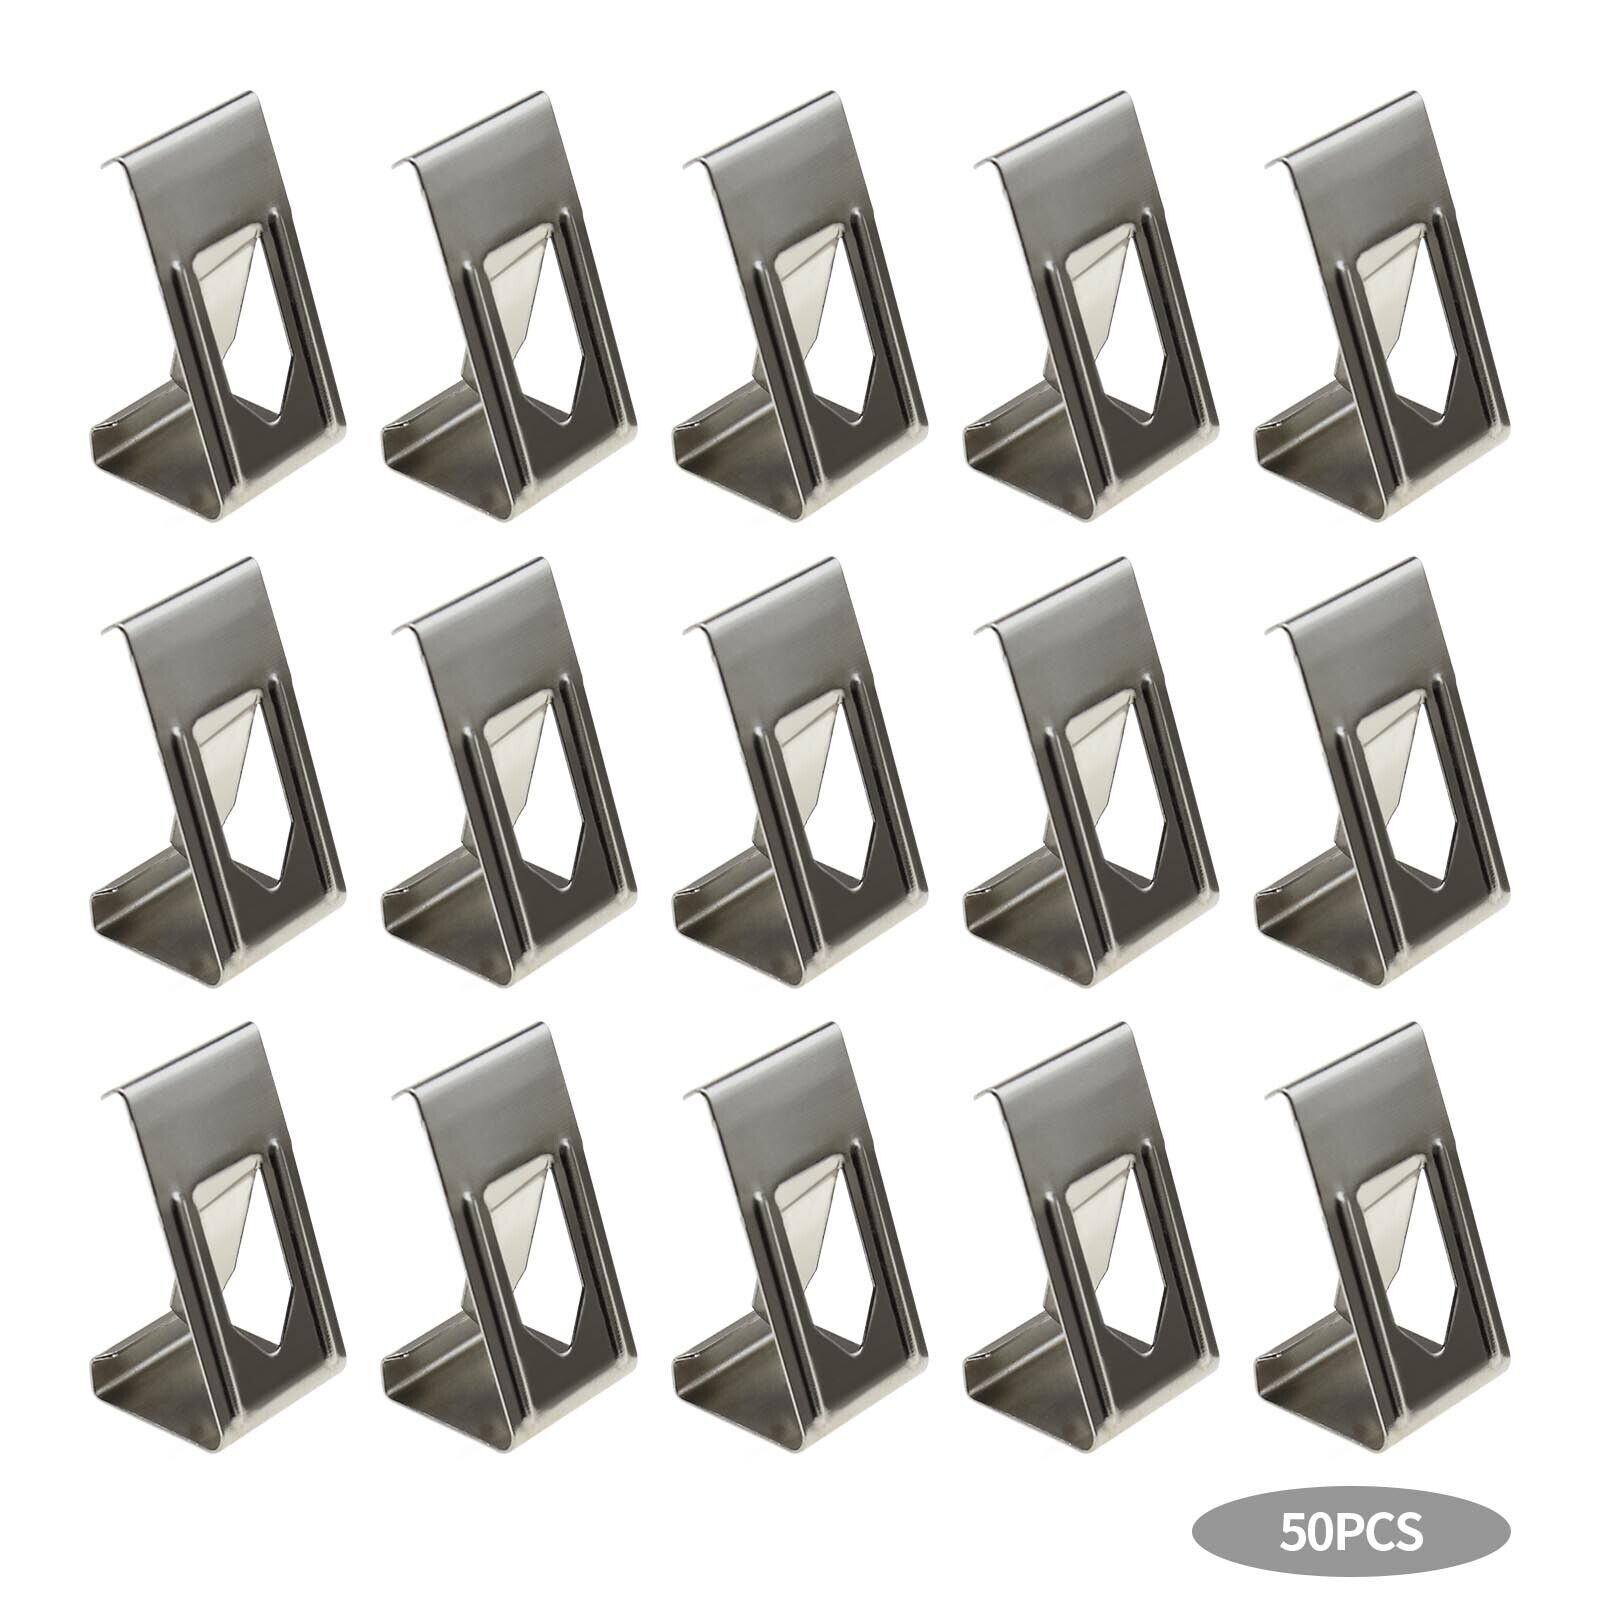 Silver Tone 3D Printer Glass Bed Clips Picture Frame Metal Holder Clamps x50